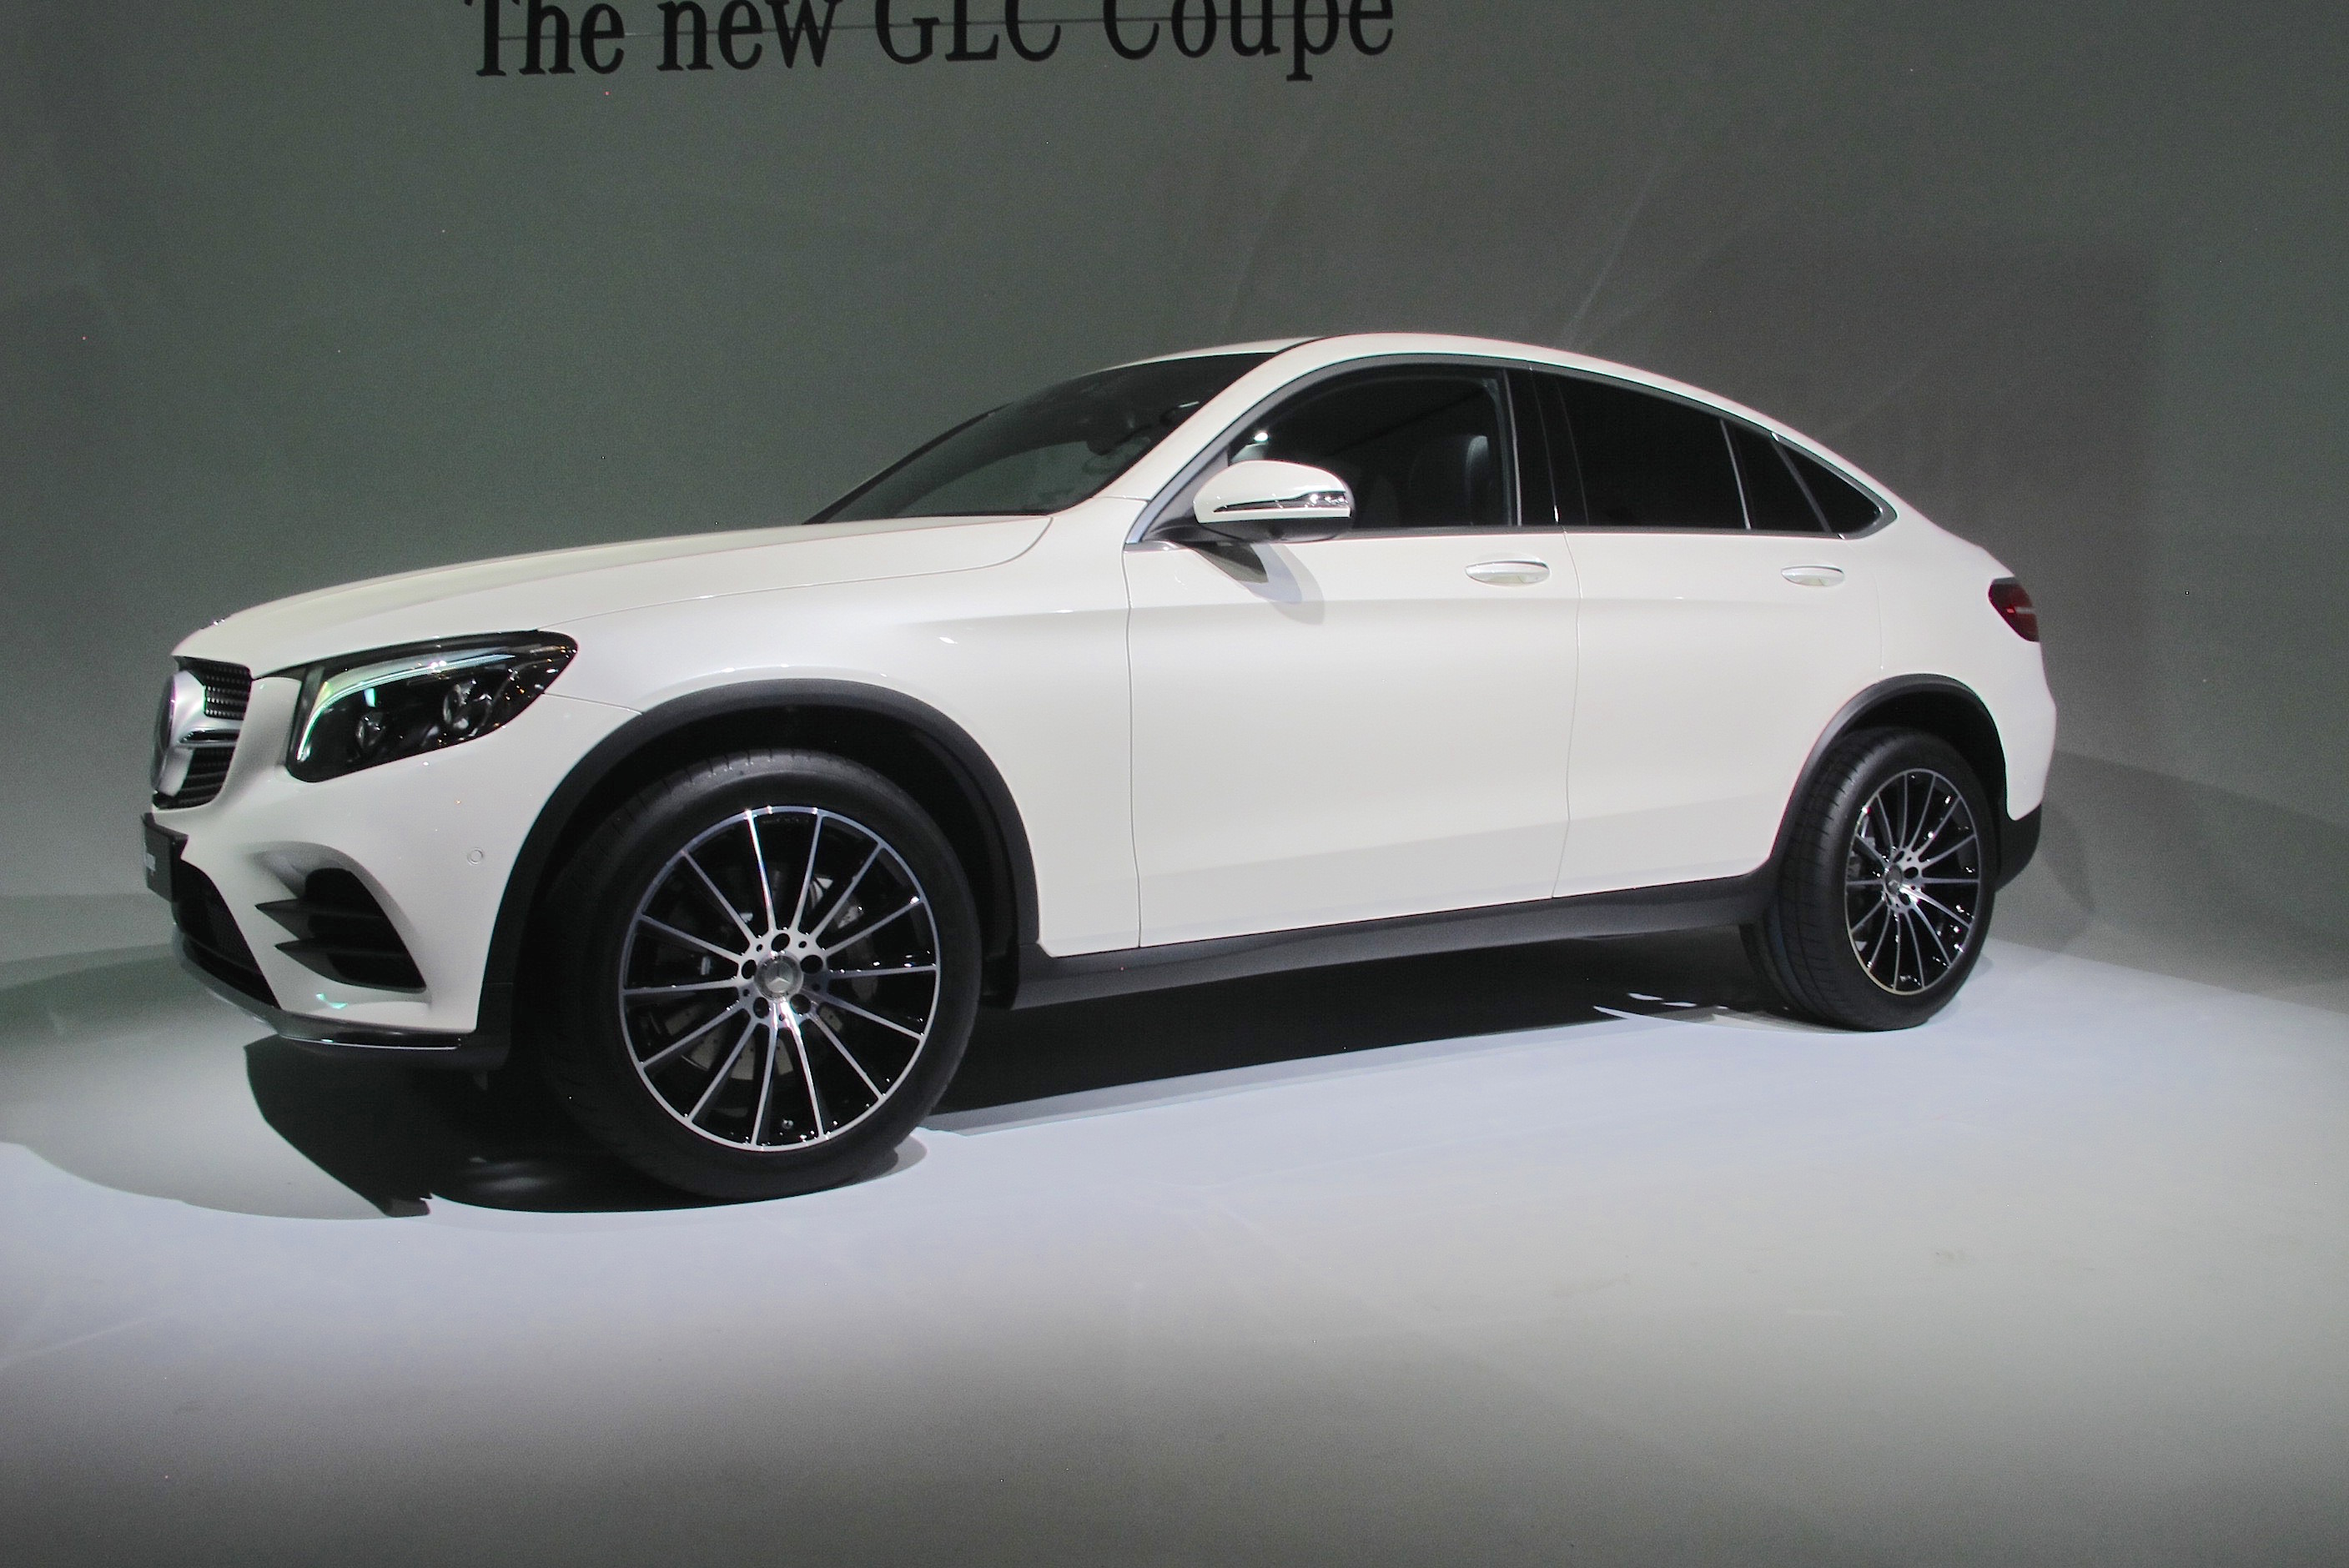 Cars For Sale Los Angeles >> 2017 Mercedes-Benz GLC Coupe and GLC43 preview